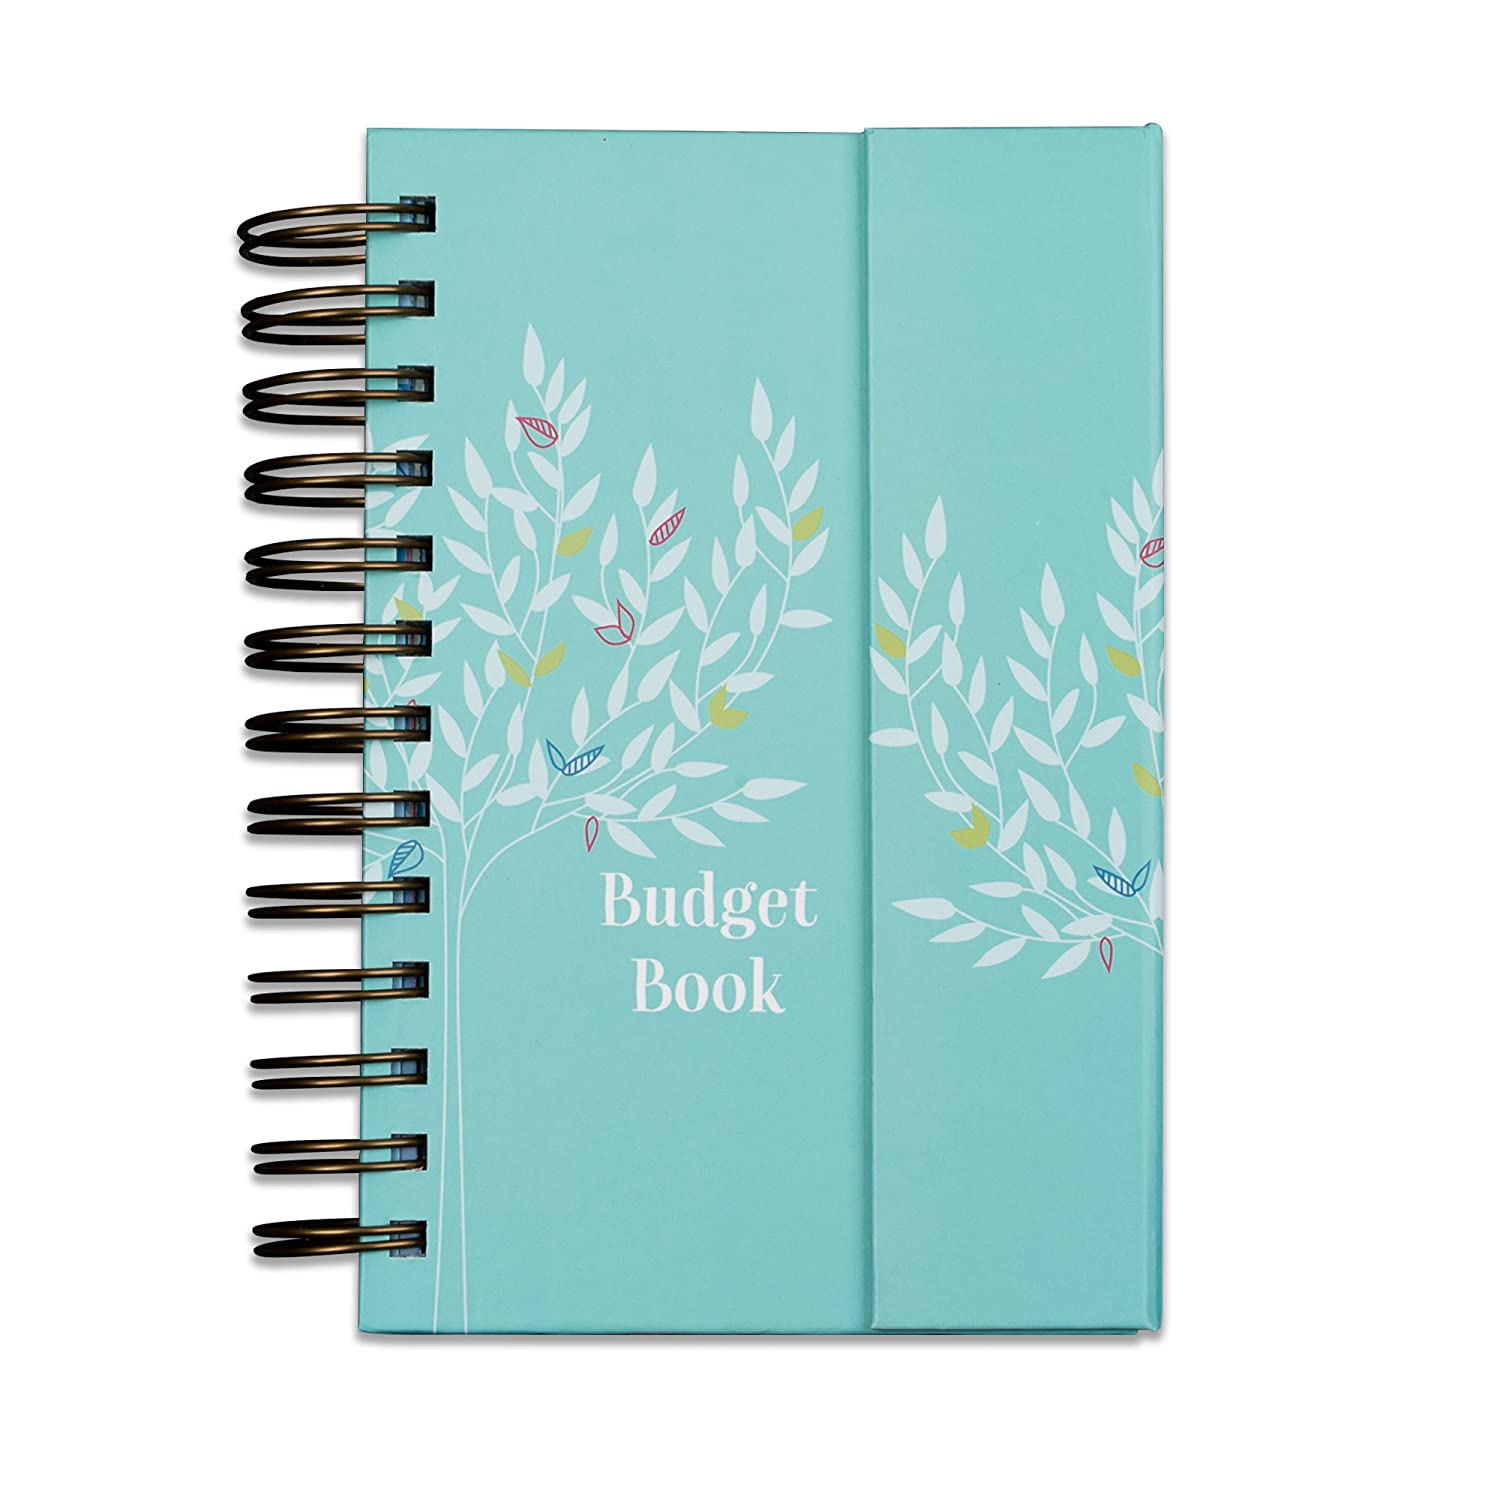 "Boxclever Press Budget Book. Monthly Bill Organizer & Budget Planner Accounts Book Keeps Track of finances, Household Expenses & Finance Tracker with Pockets (7"" x 5.3"" x 1.3"", Turquoise) BCBB."